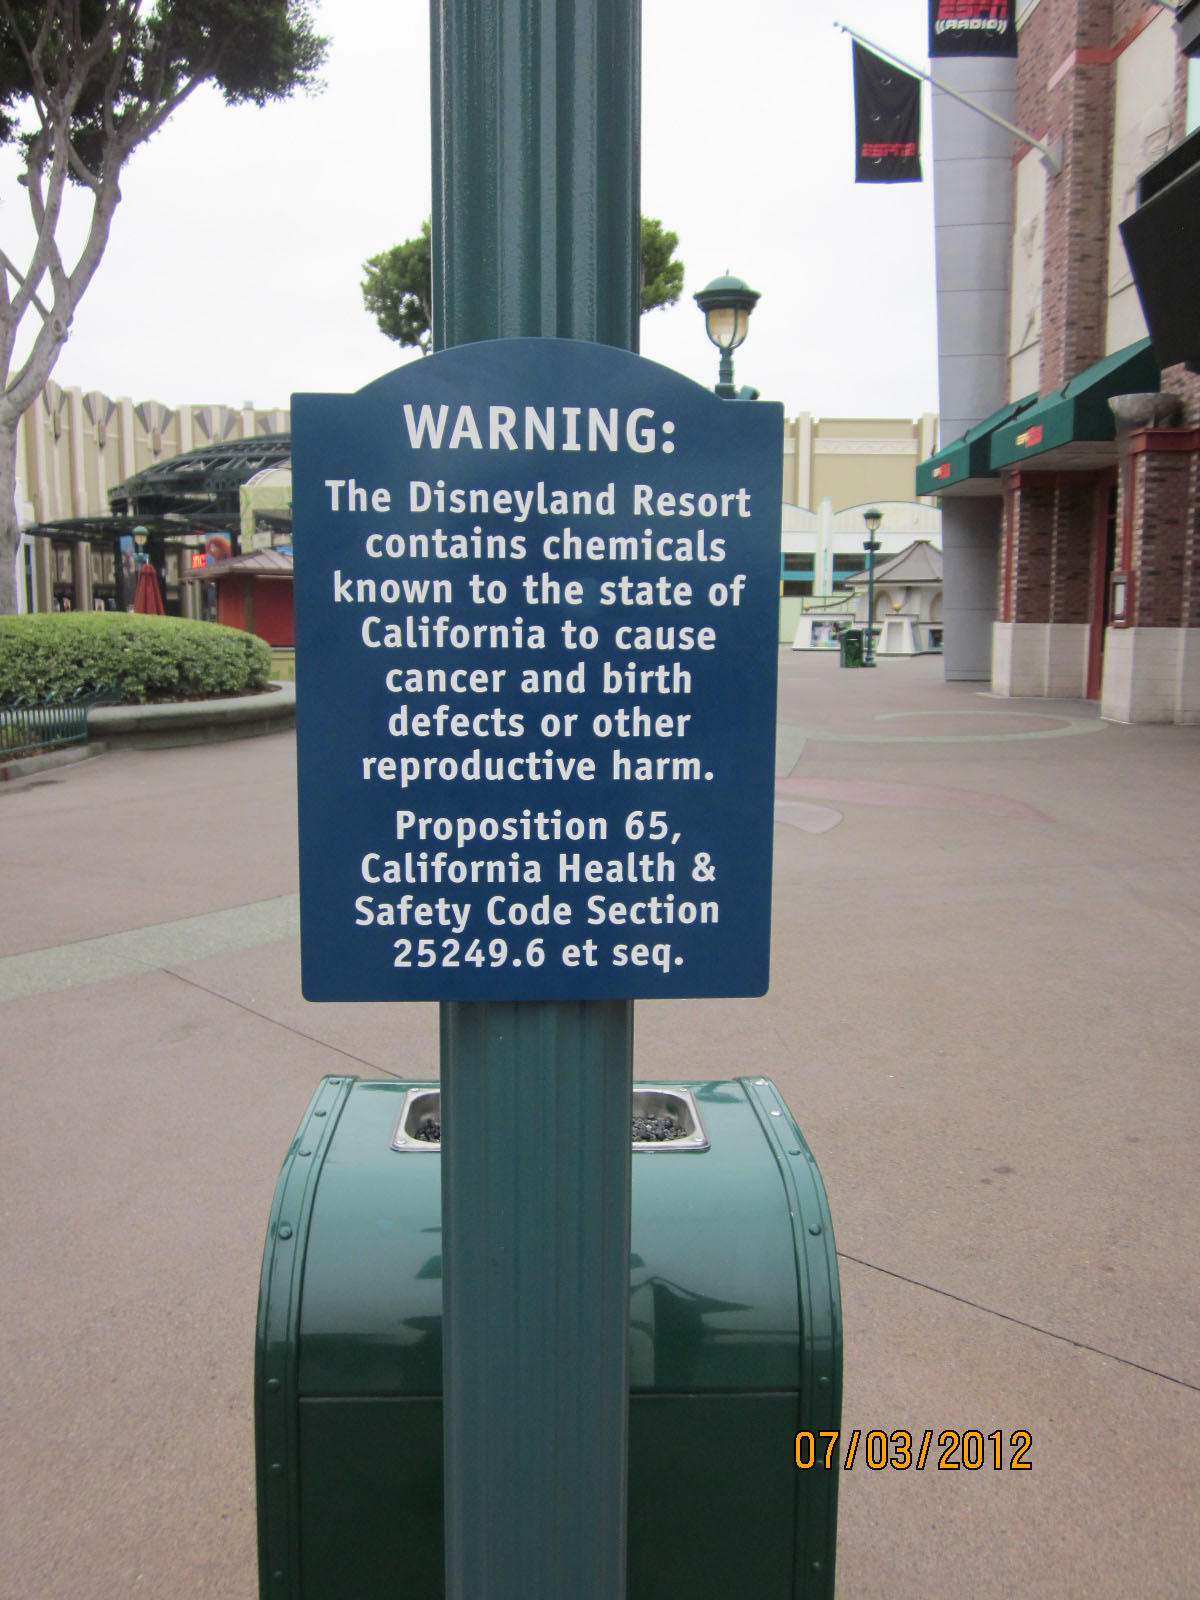 When are California's Regulation too much ??